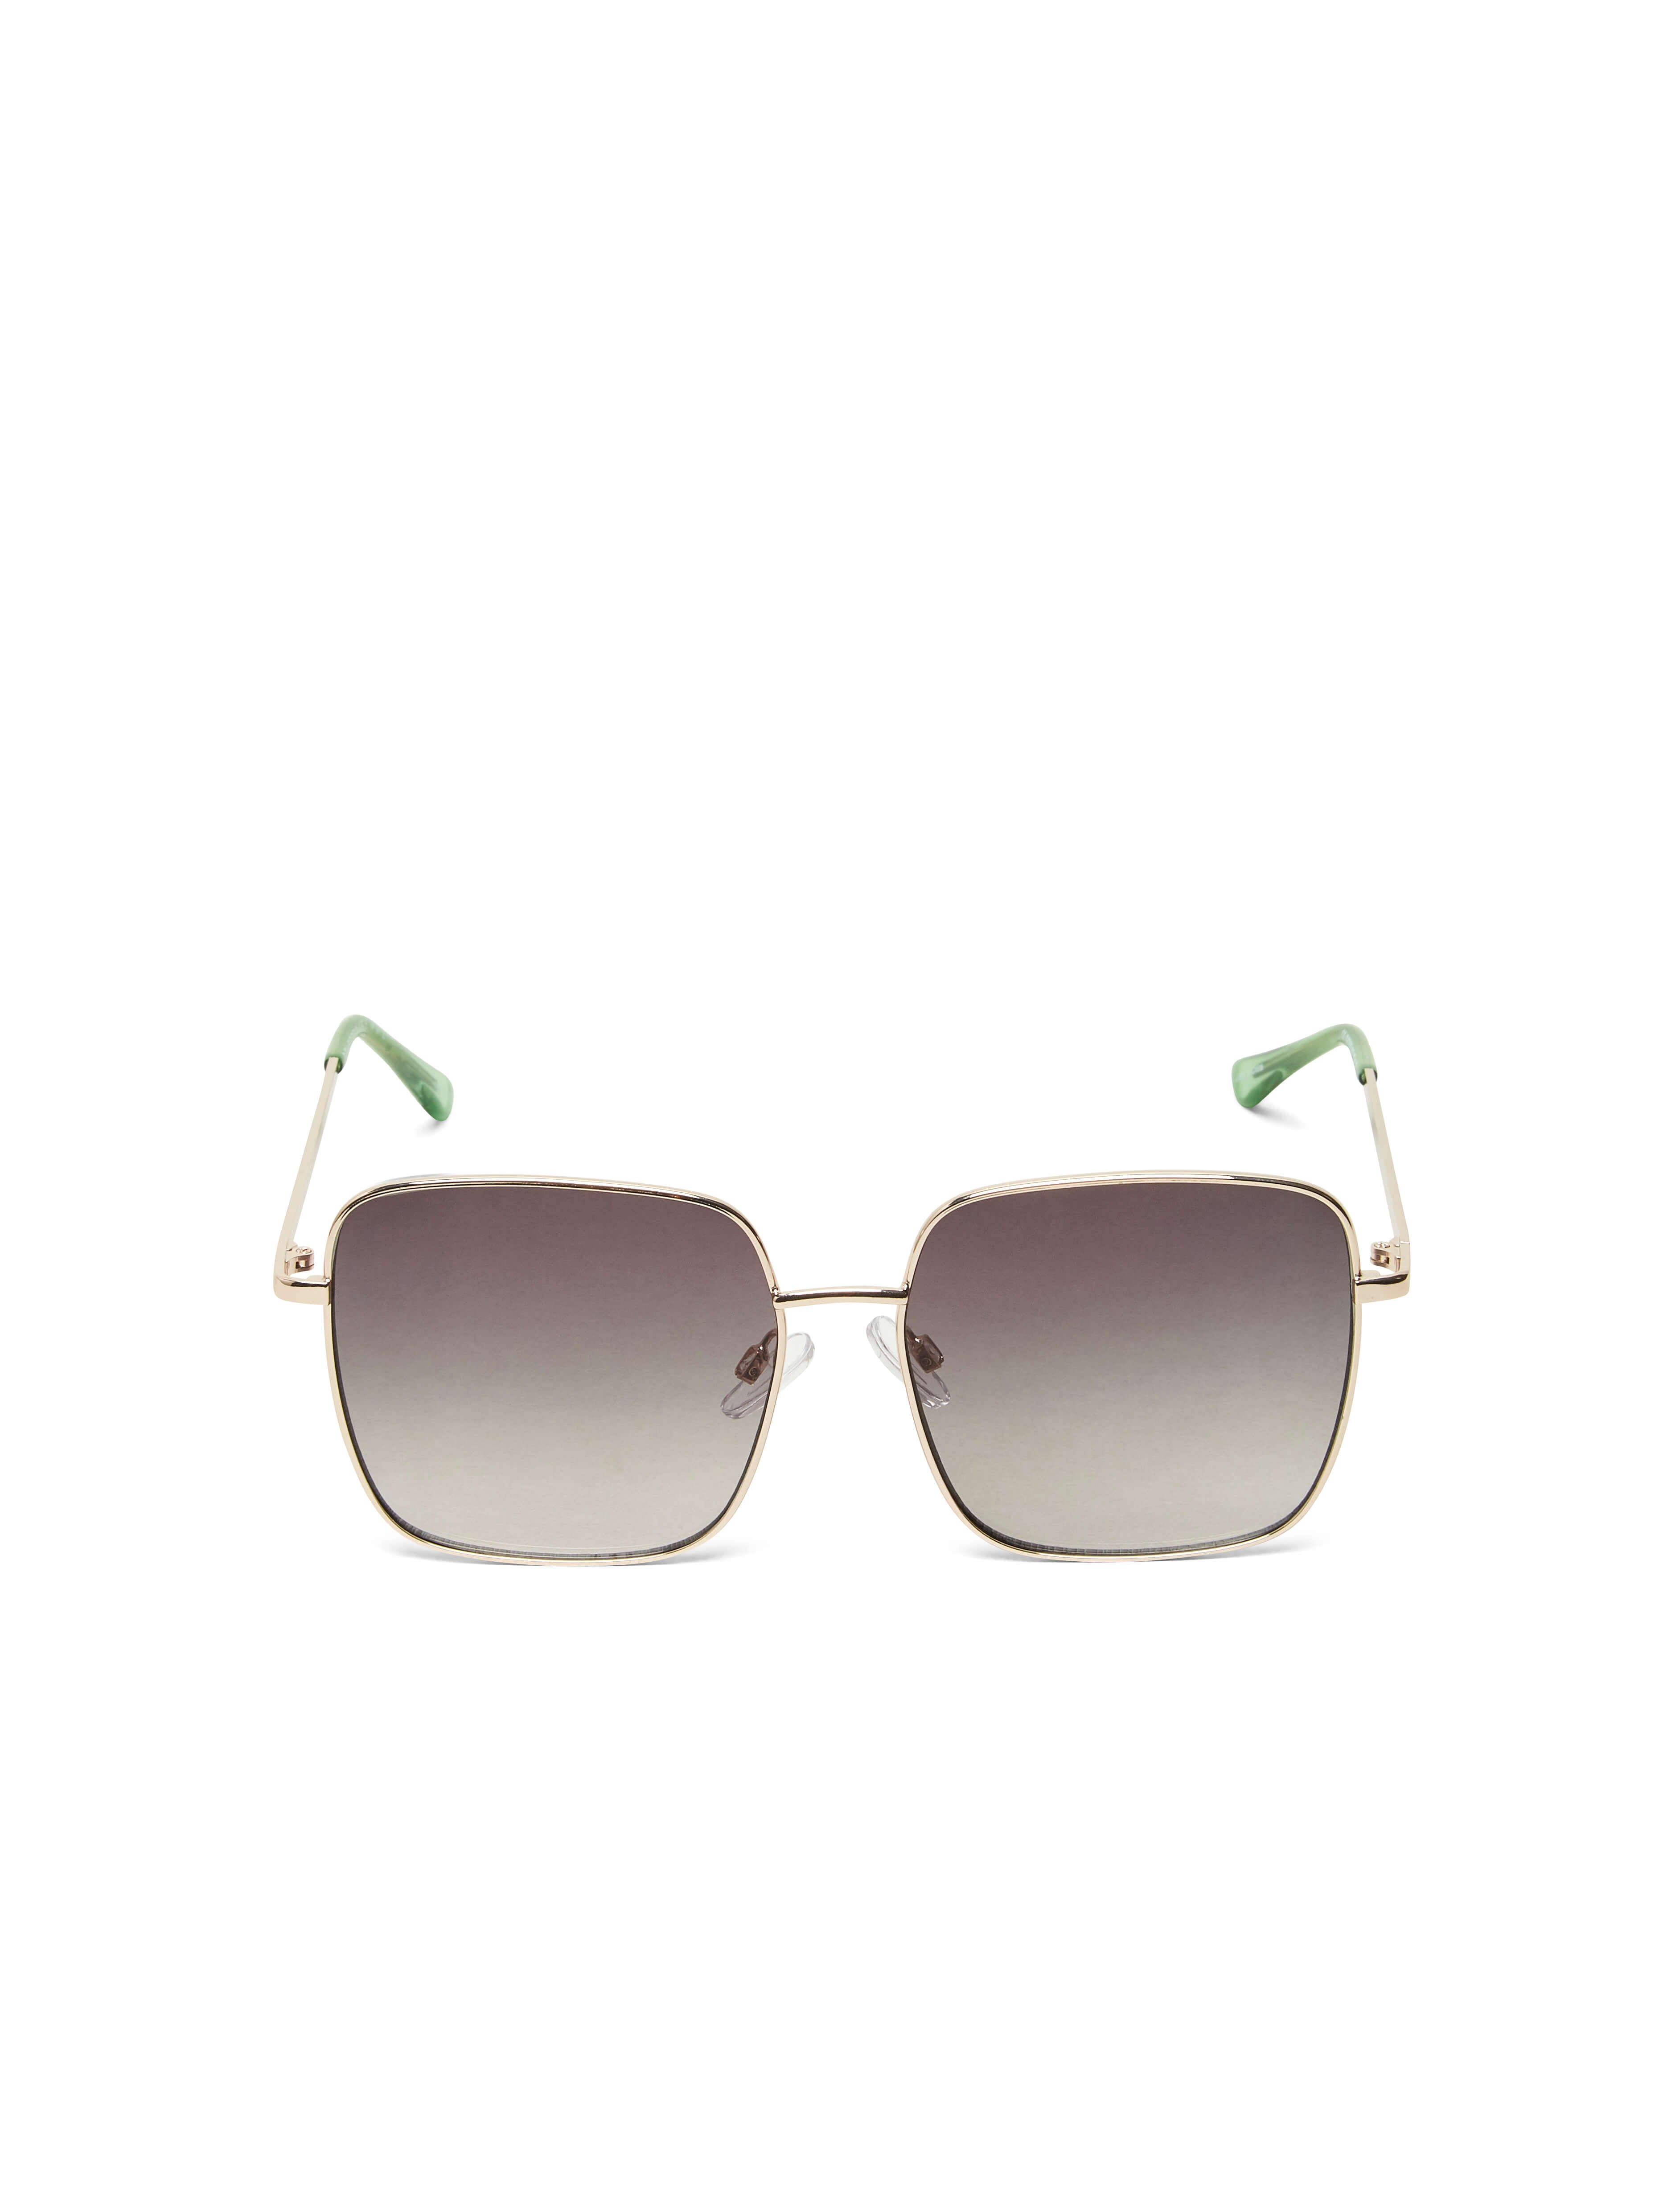 SLF Lovisa sunglasses in silver with square frame